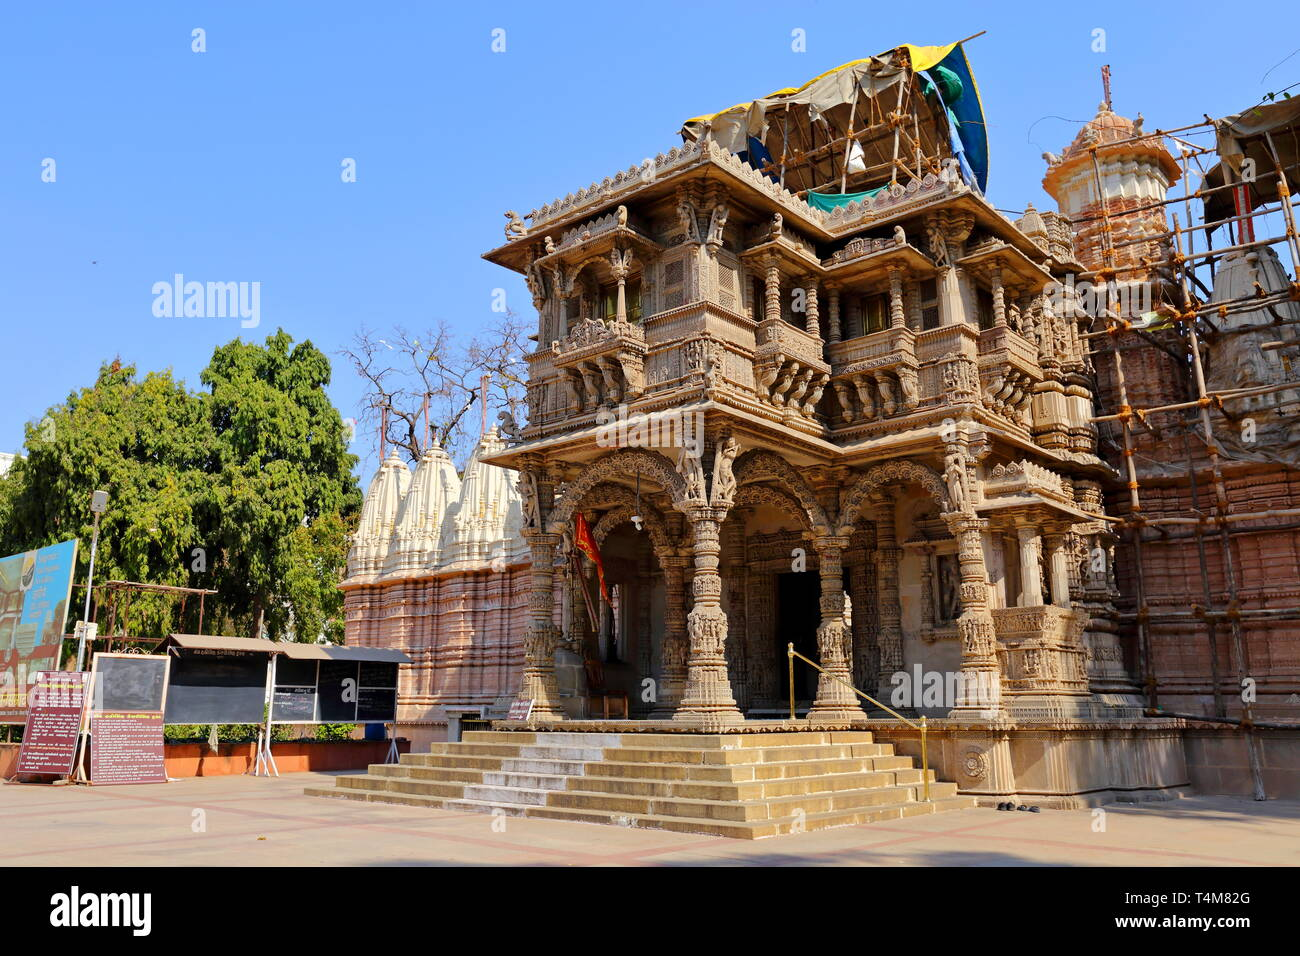 The entrance of Hutheesing Temple in Ahmedabad, Gujarat, India. - Stock Image